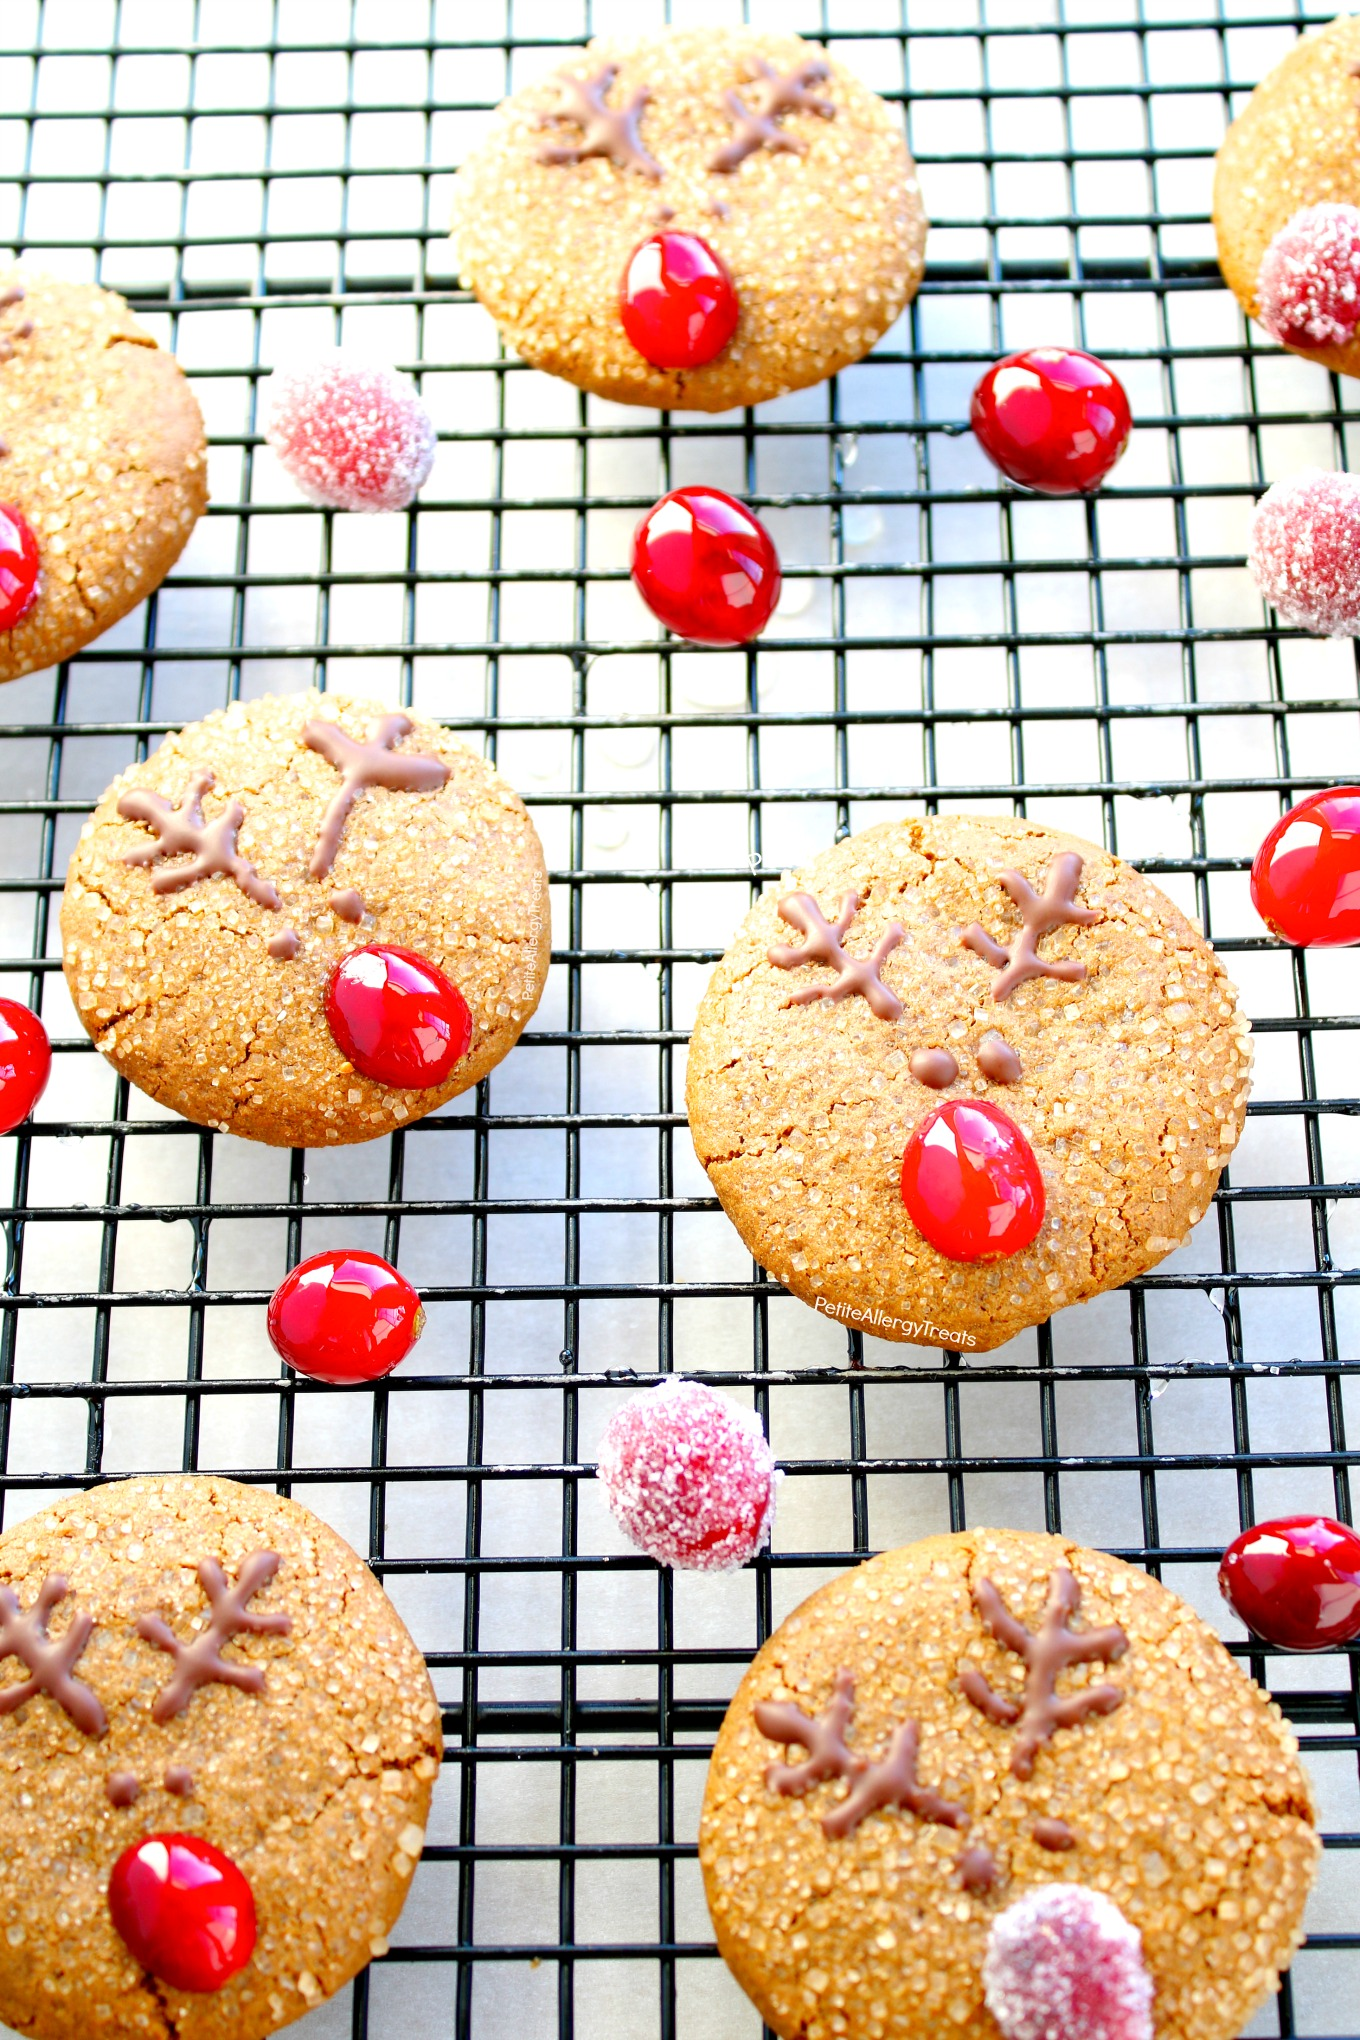 Dairy Free Reindeer Cookies (Soft Gluten Free Vegan Gingersnap Cookies) Recipe- Adorable Christmas reindeer cookies with natural red nose. Food Allergy friendly!